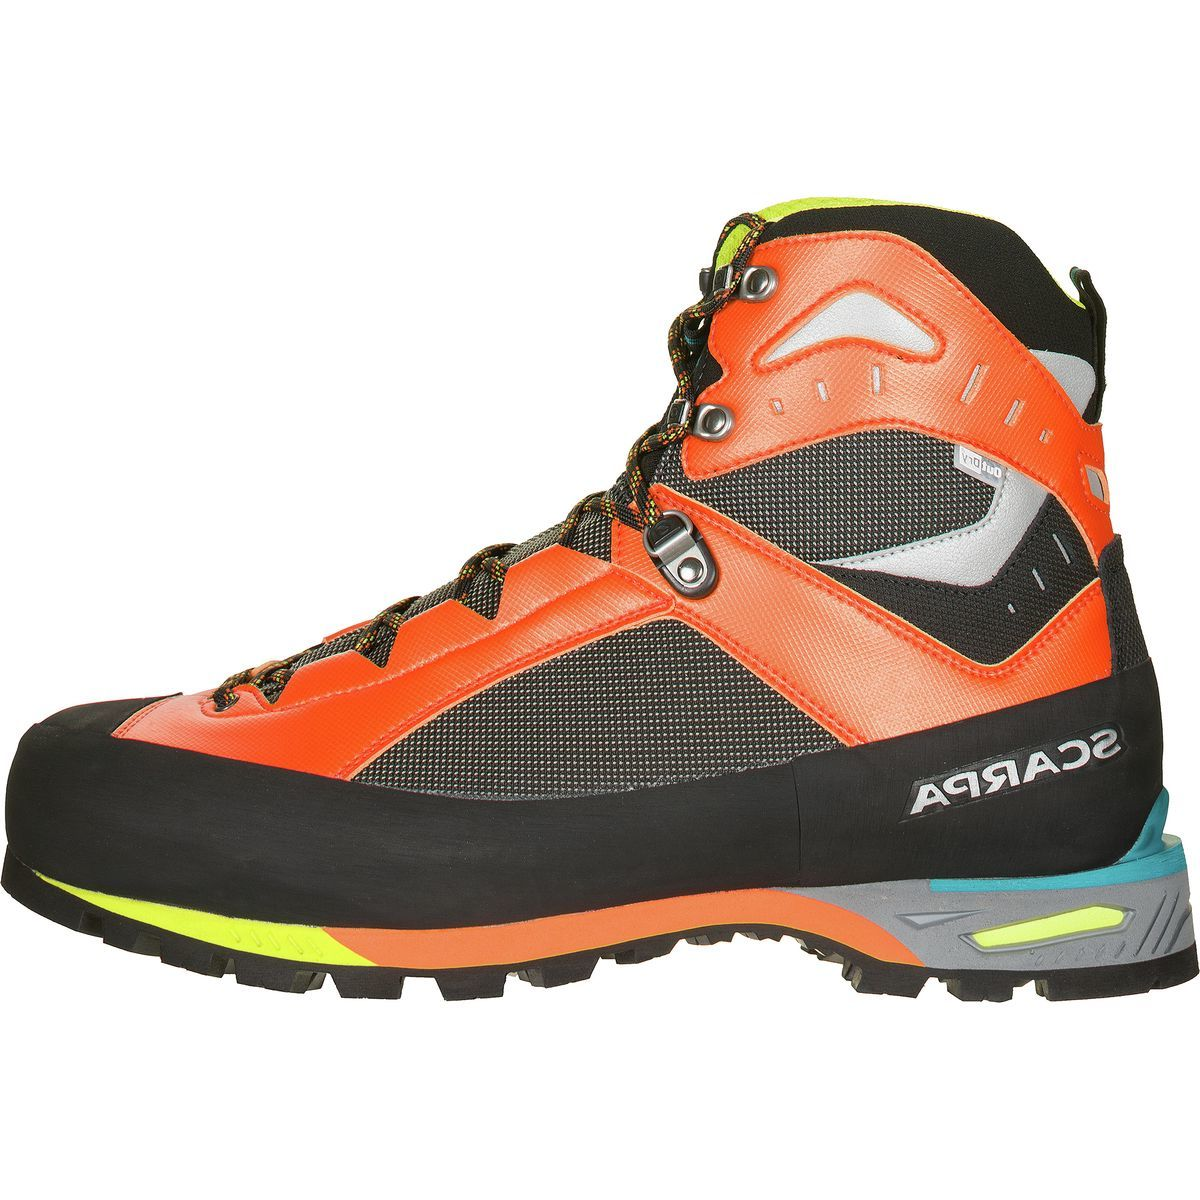 Scarpa Charmoz Mountaineering Boot - Men's